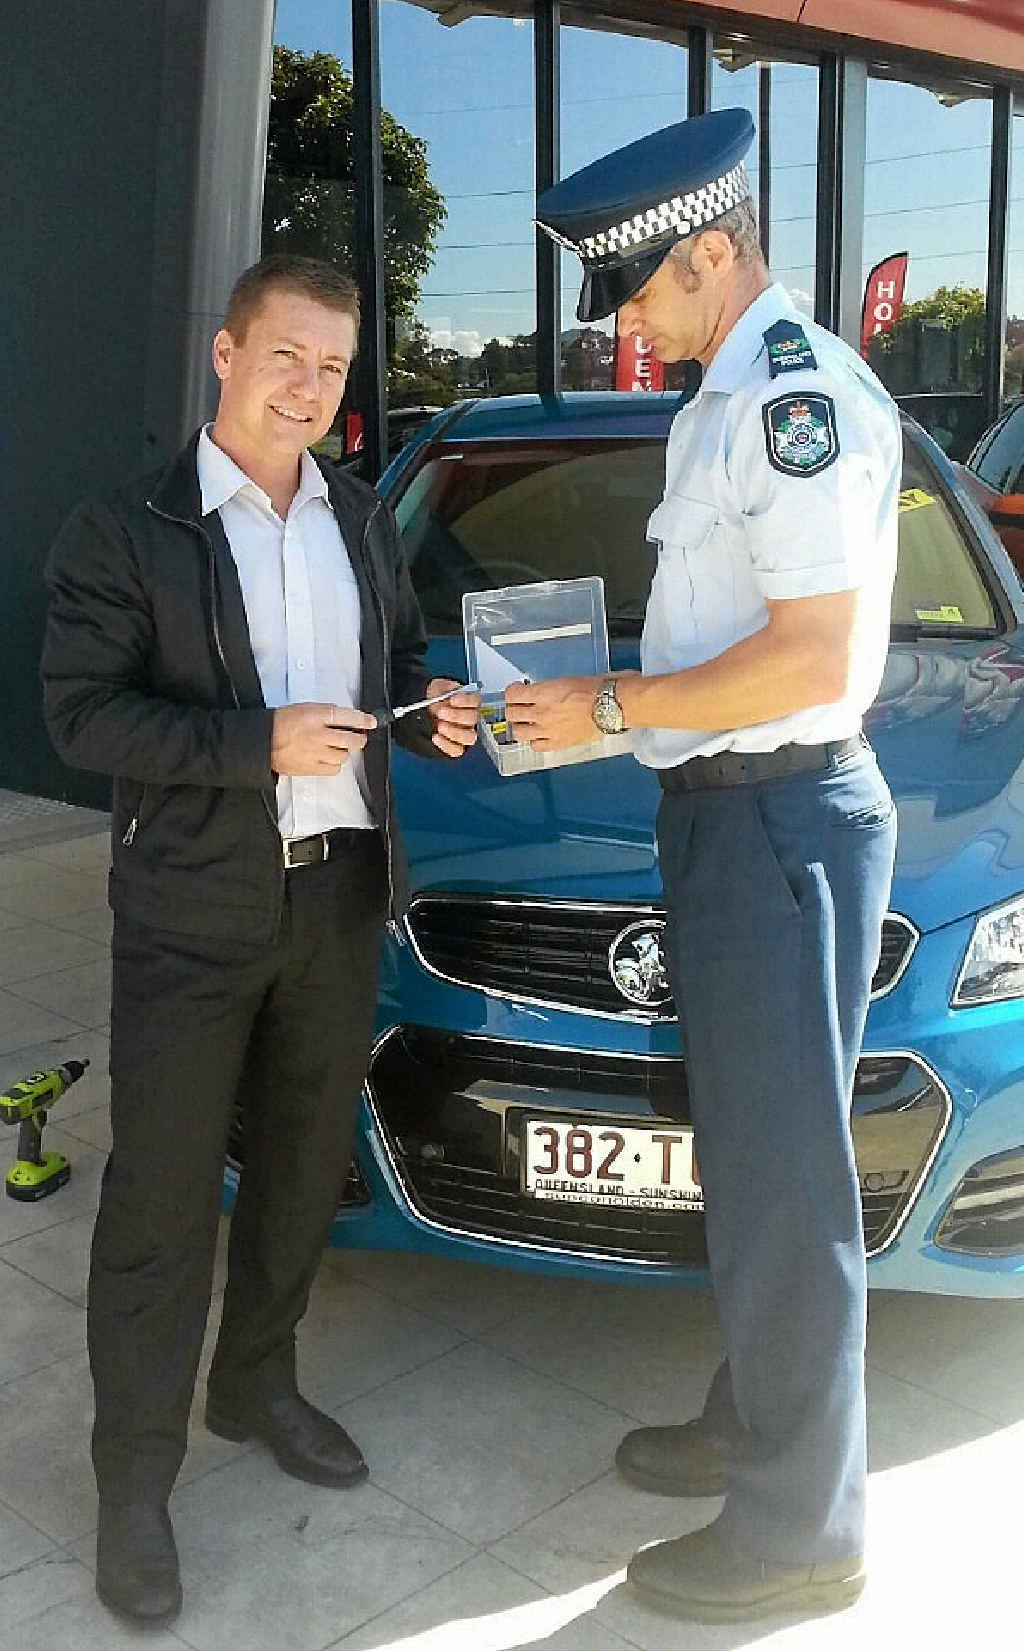 CO-OPERATION: Sunco Motors general sales manager Ky Vogler and a police officer discuss ways of minimising vehicle number plate theft.